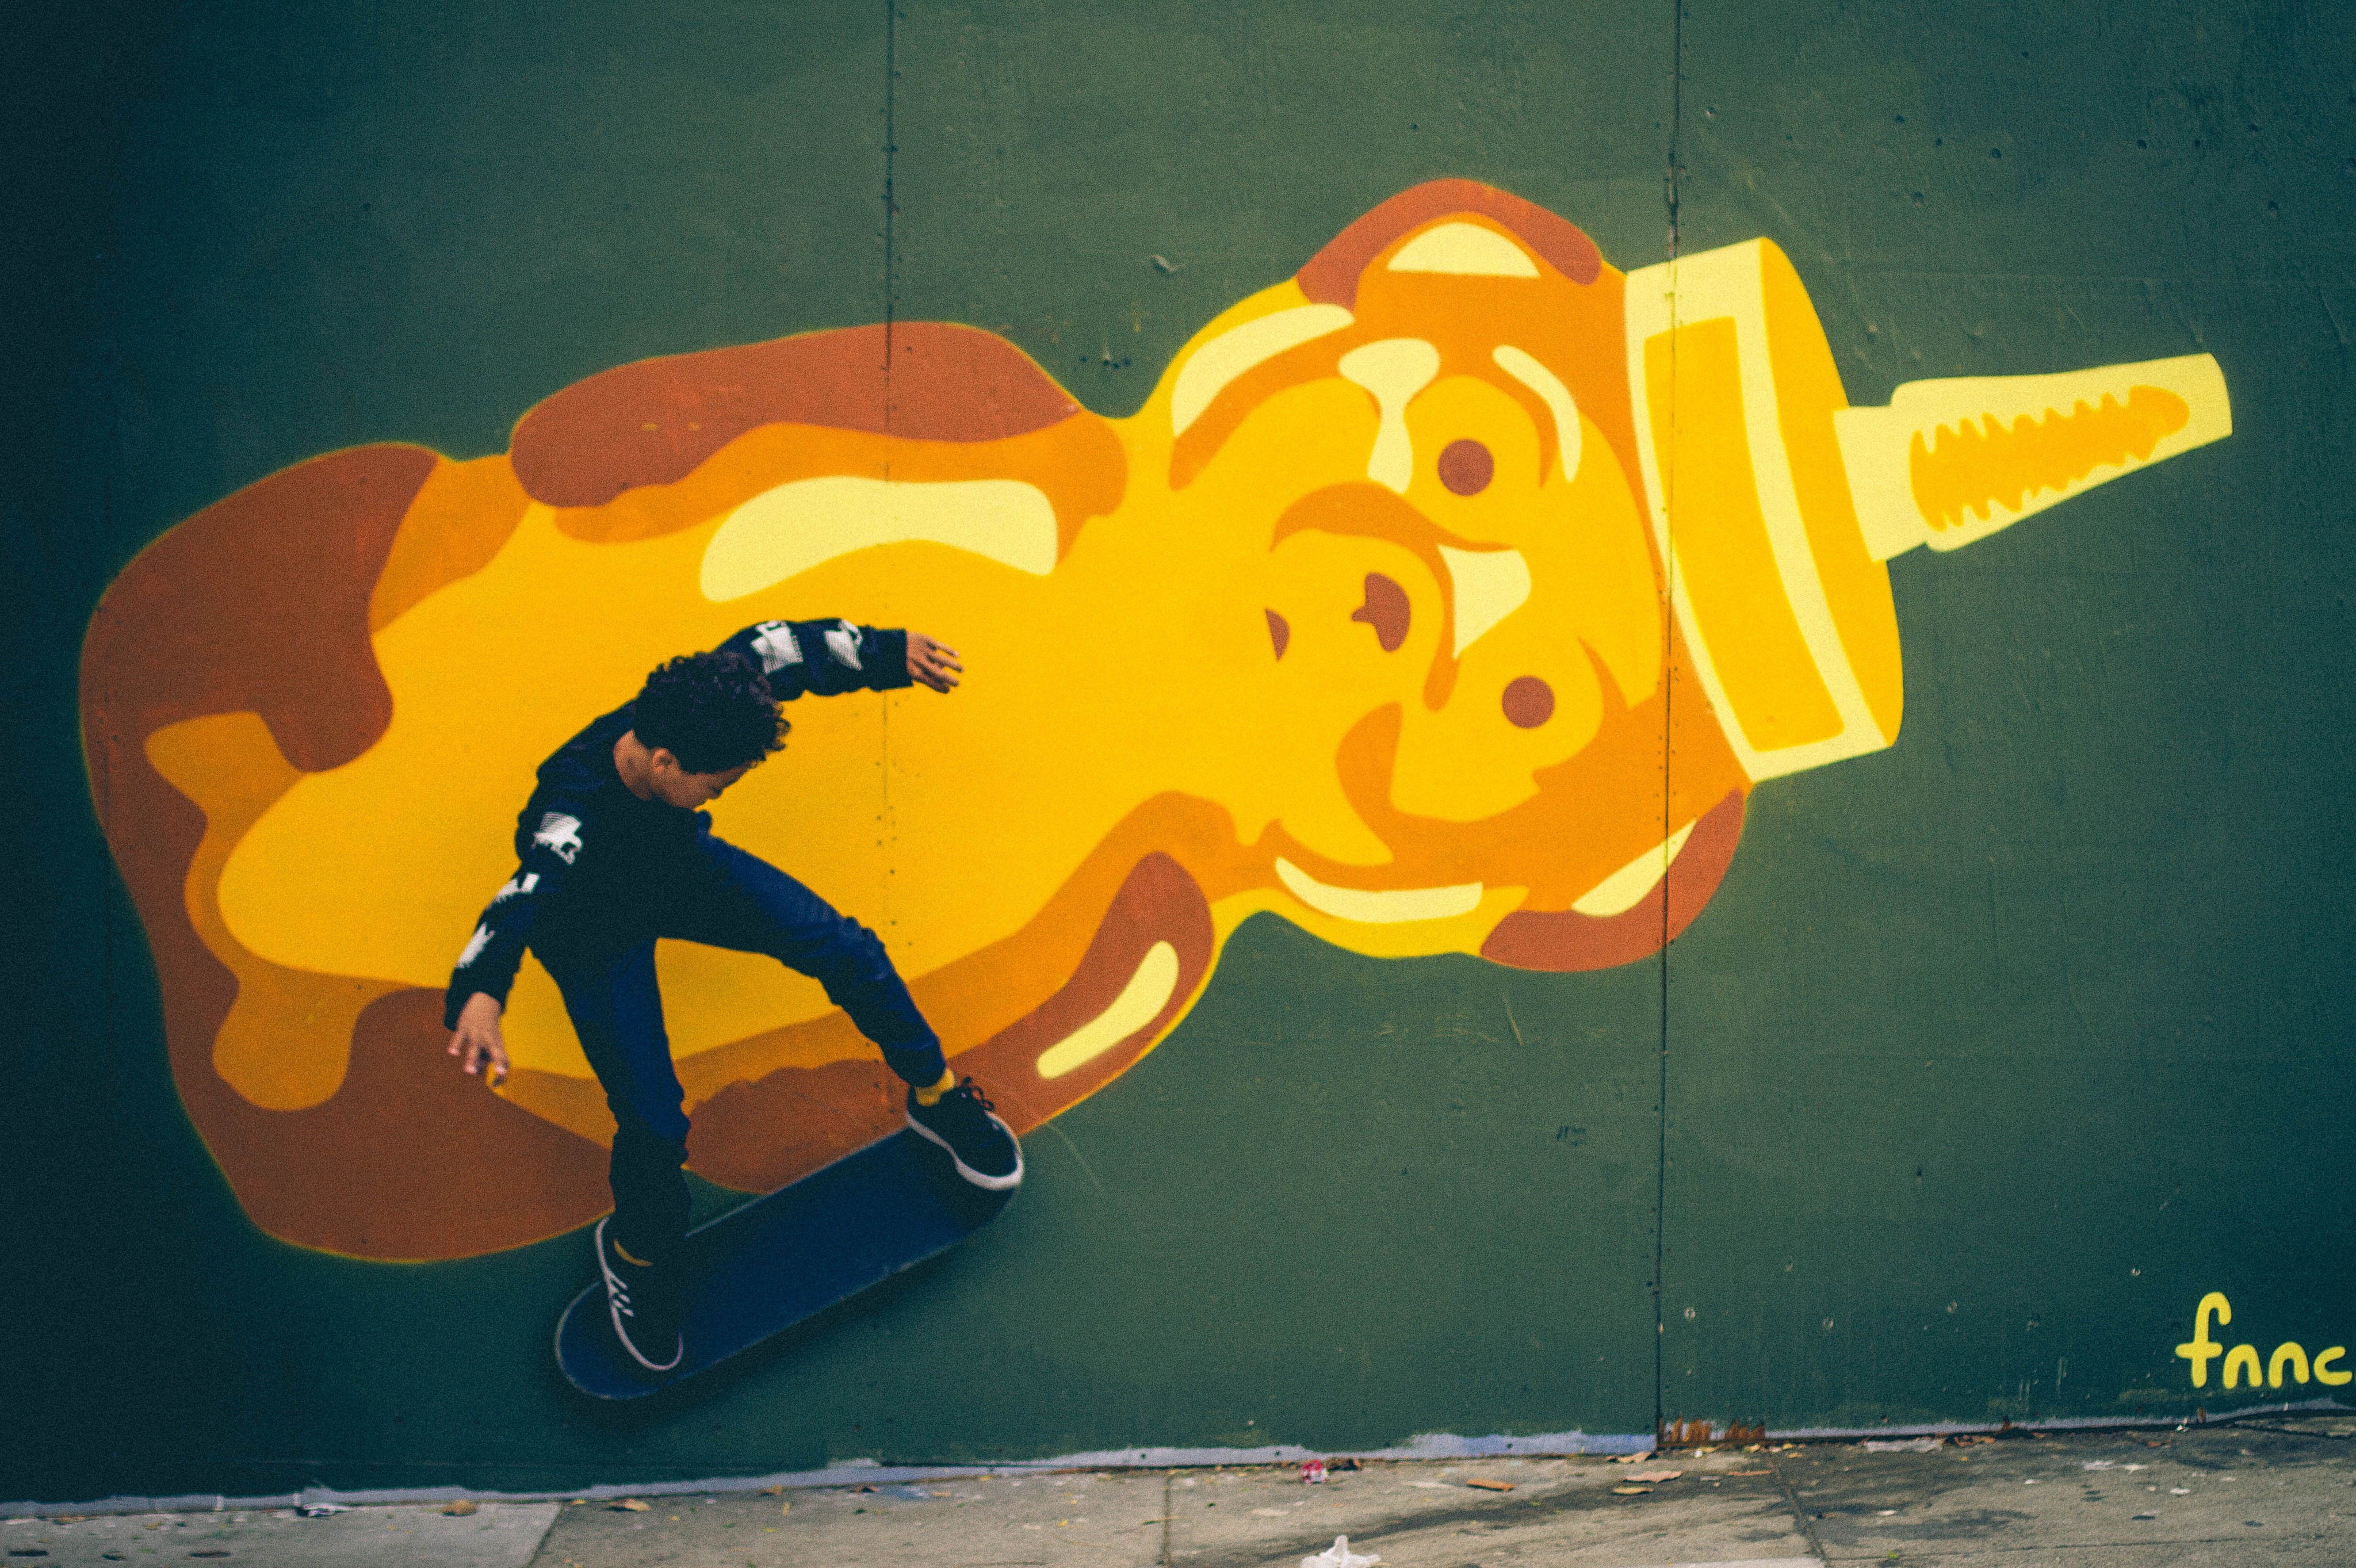 New Festival, St.ART, Will Bring Street Artists to Two City Parks ...